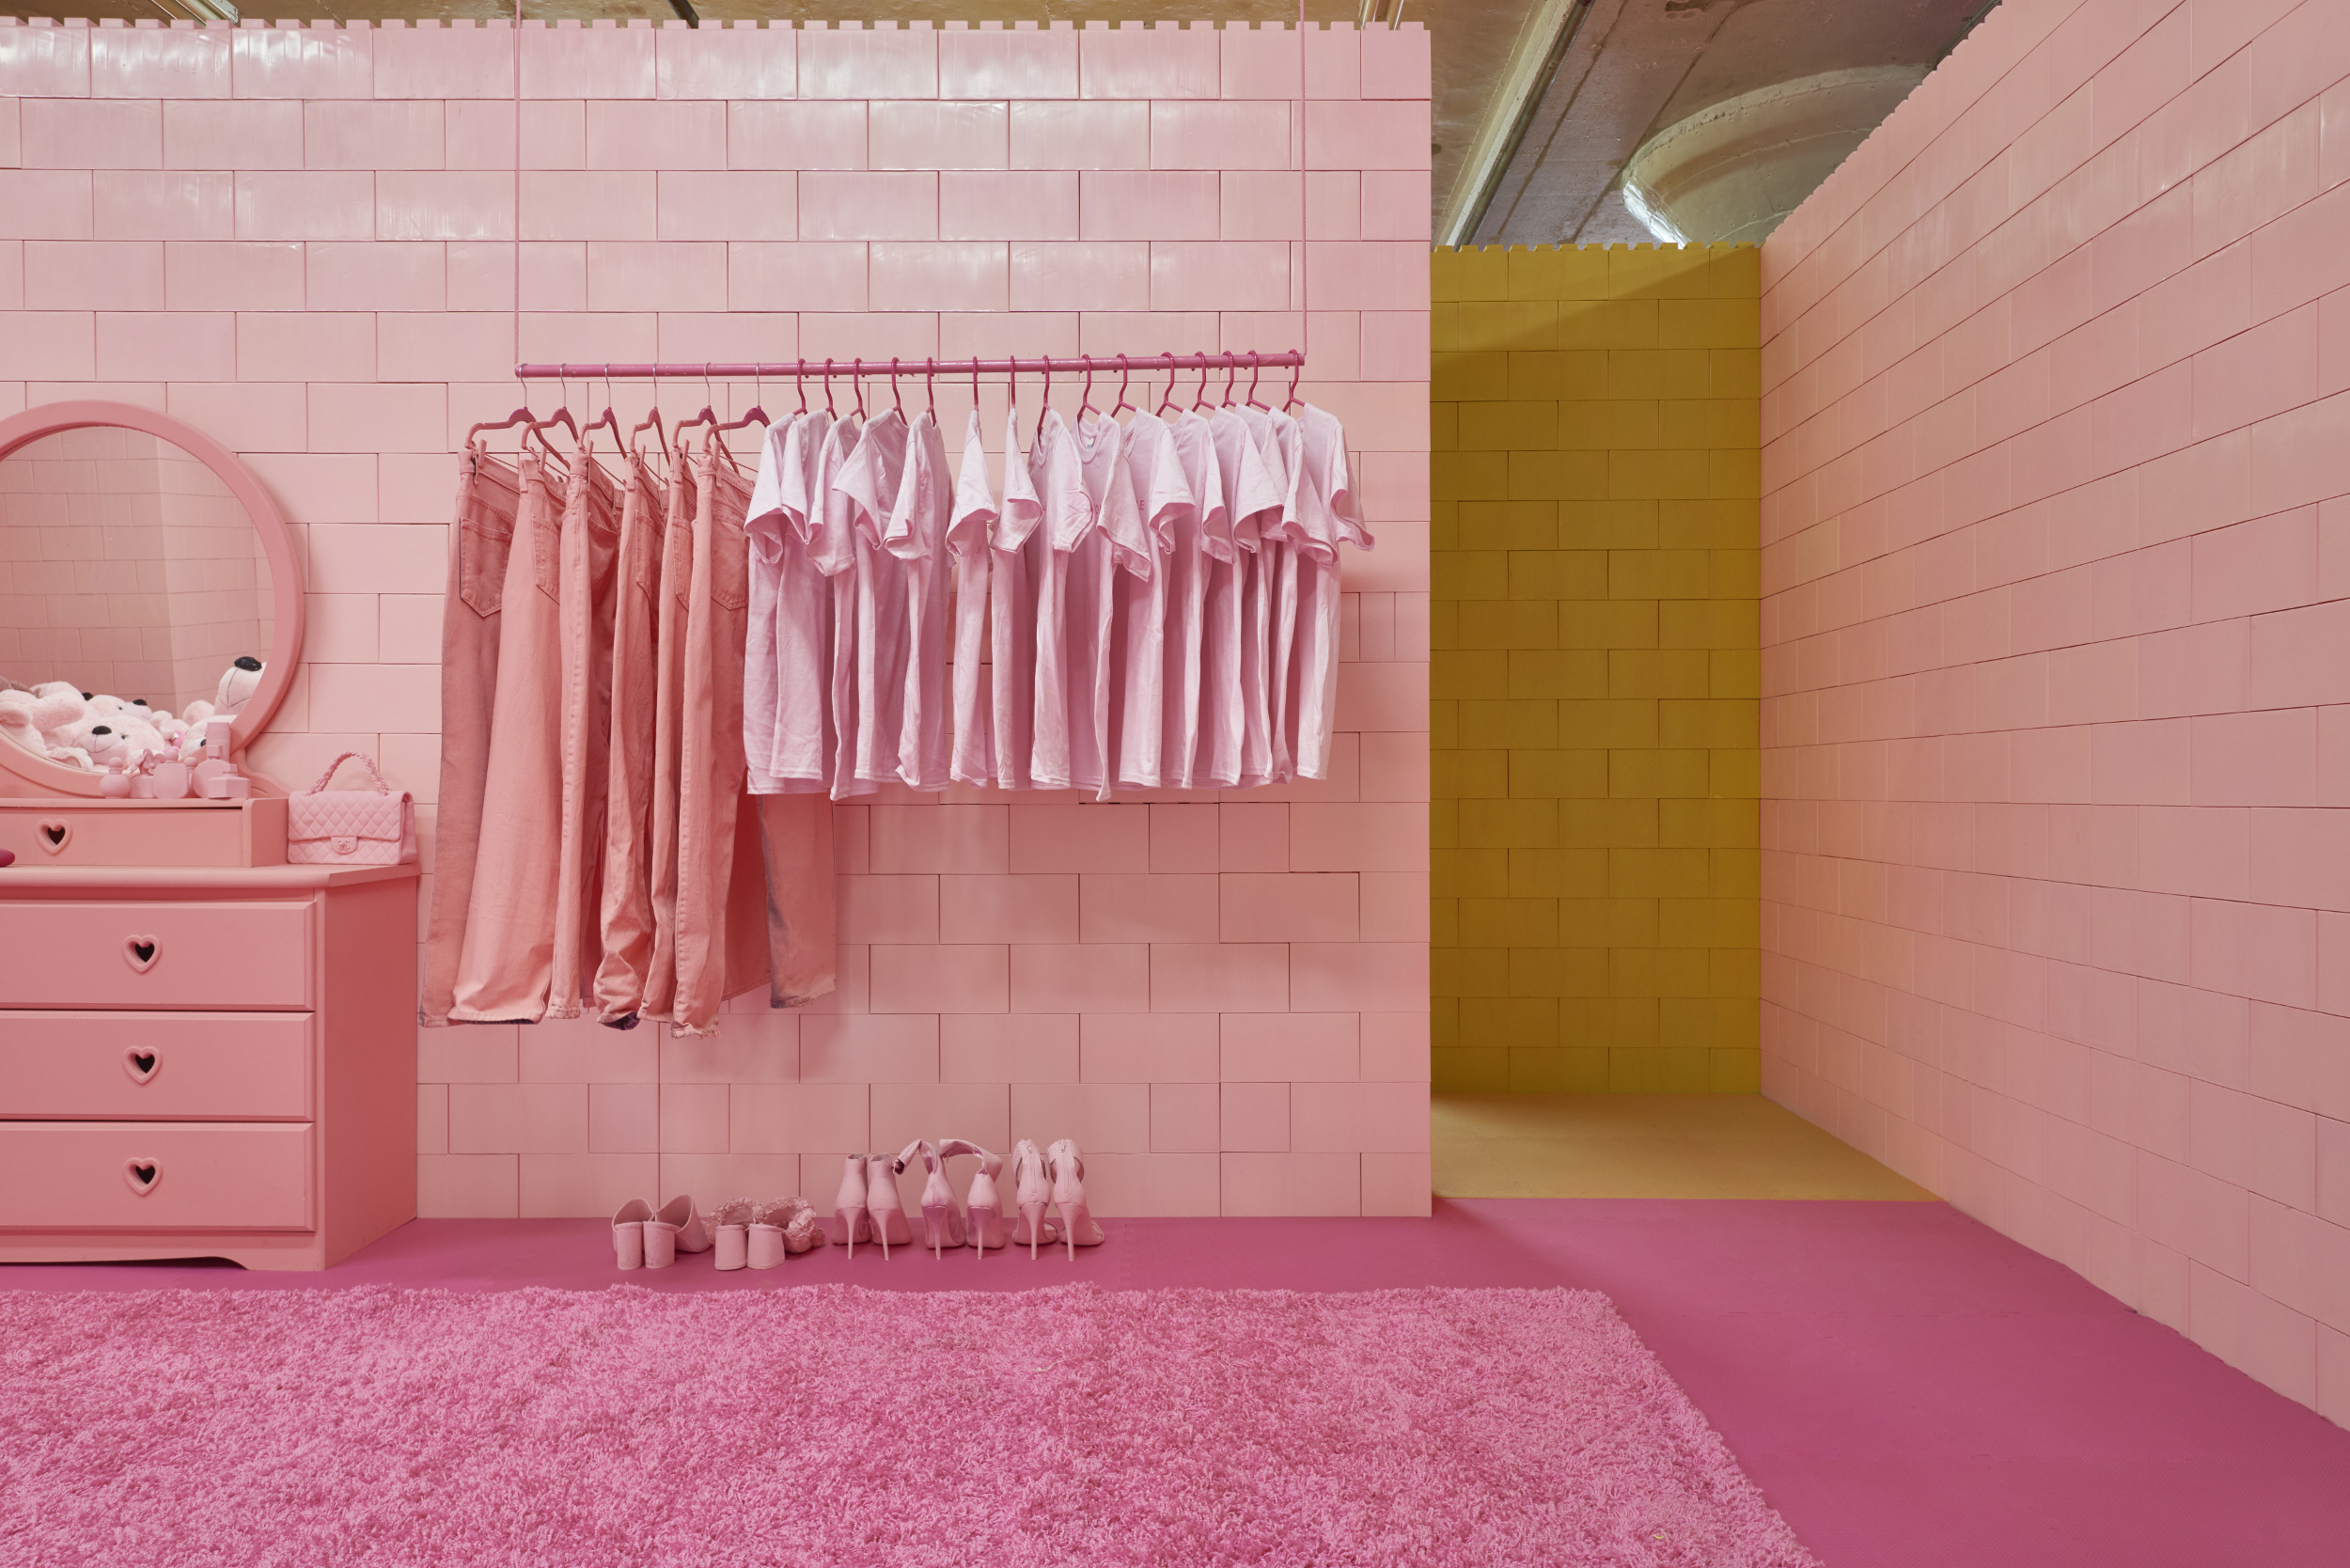 The pink room at the Monochrome exhibition.